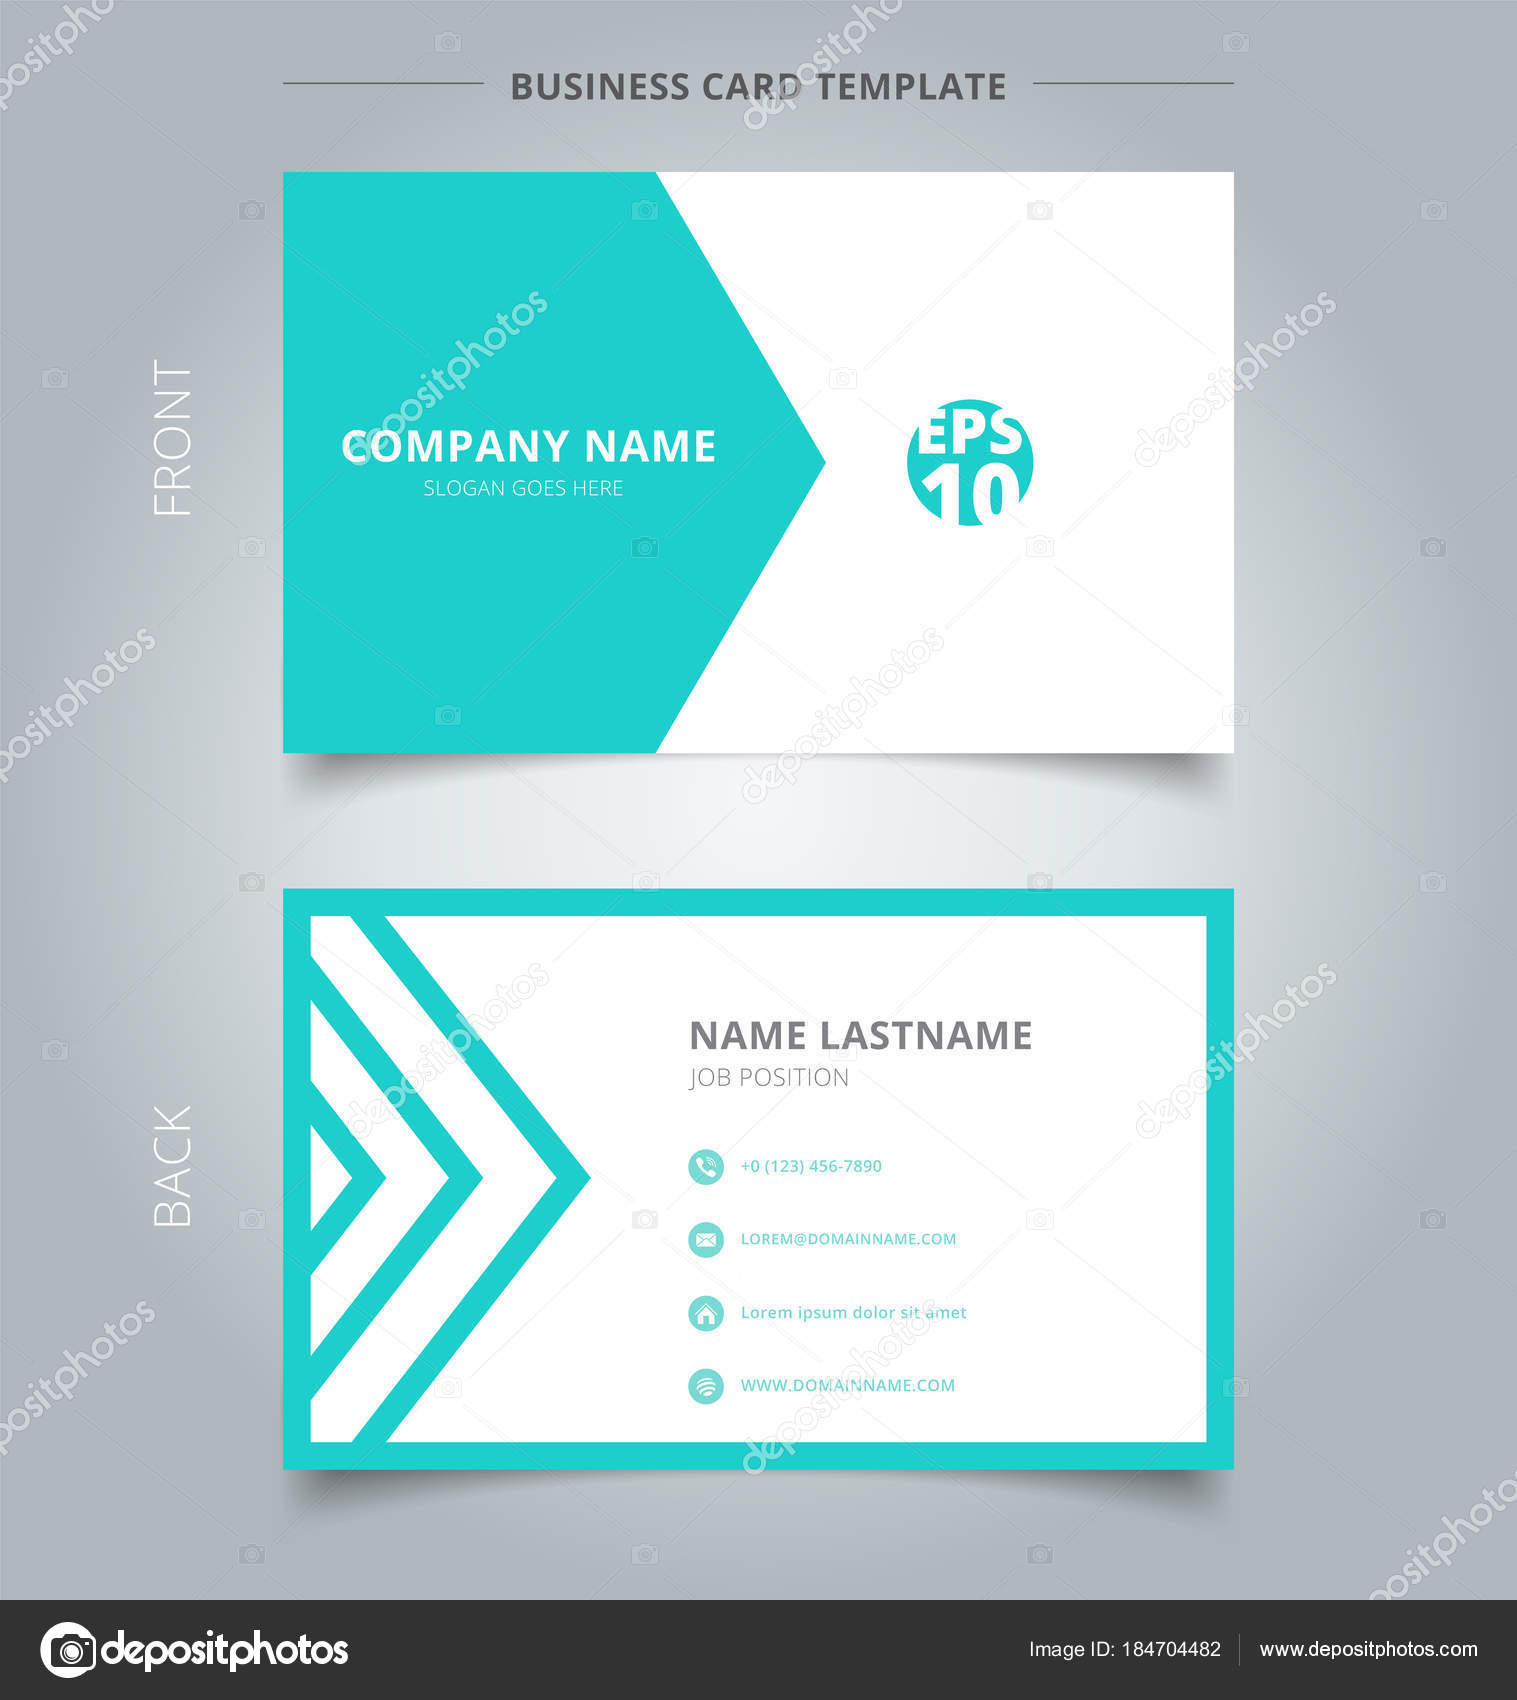 Creative business card and name card template green and white tr ...